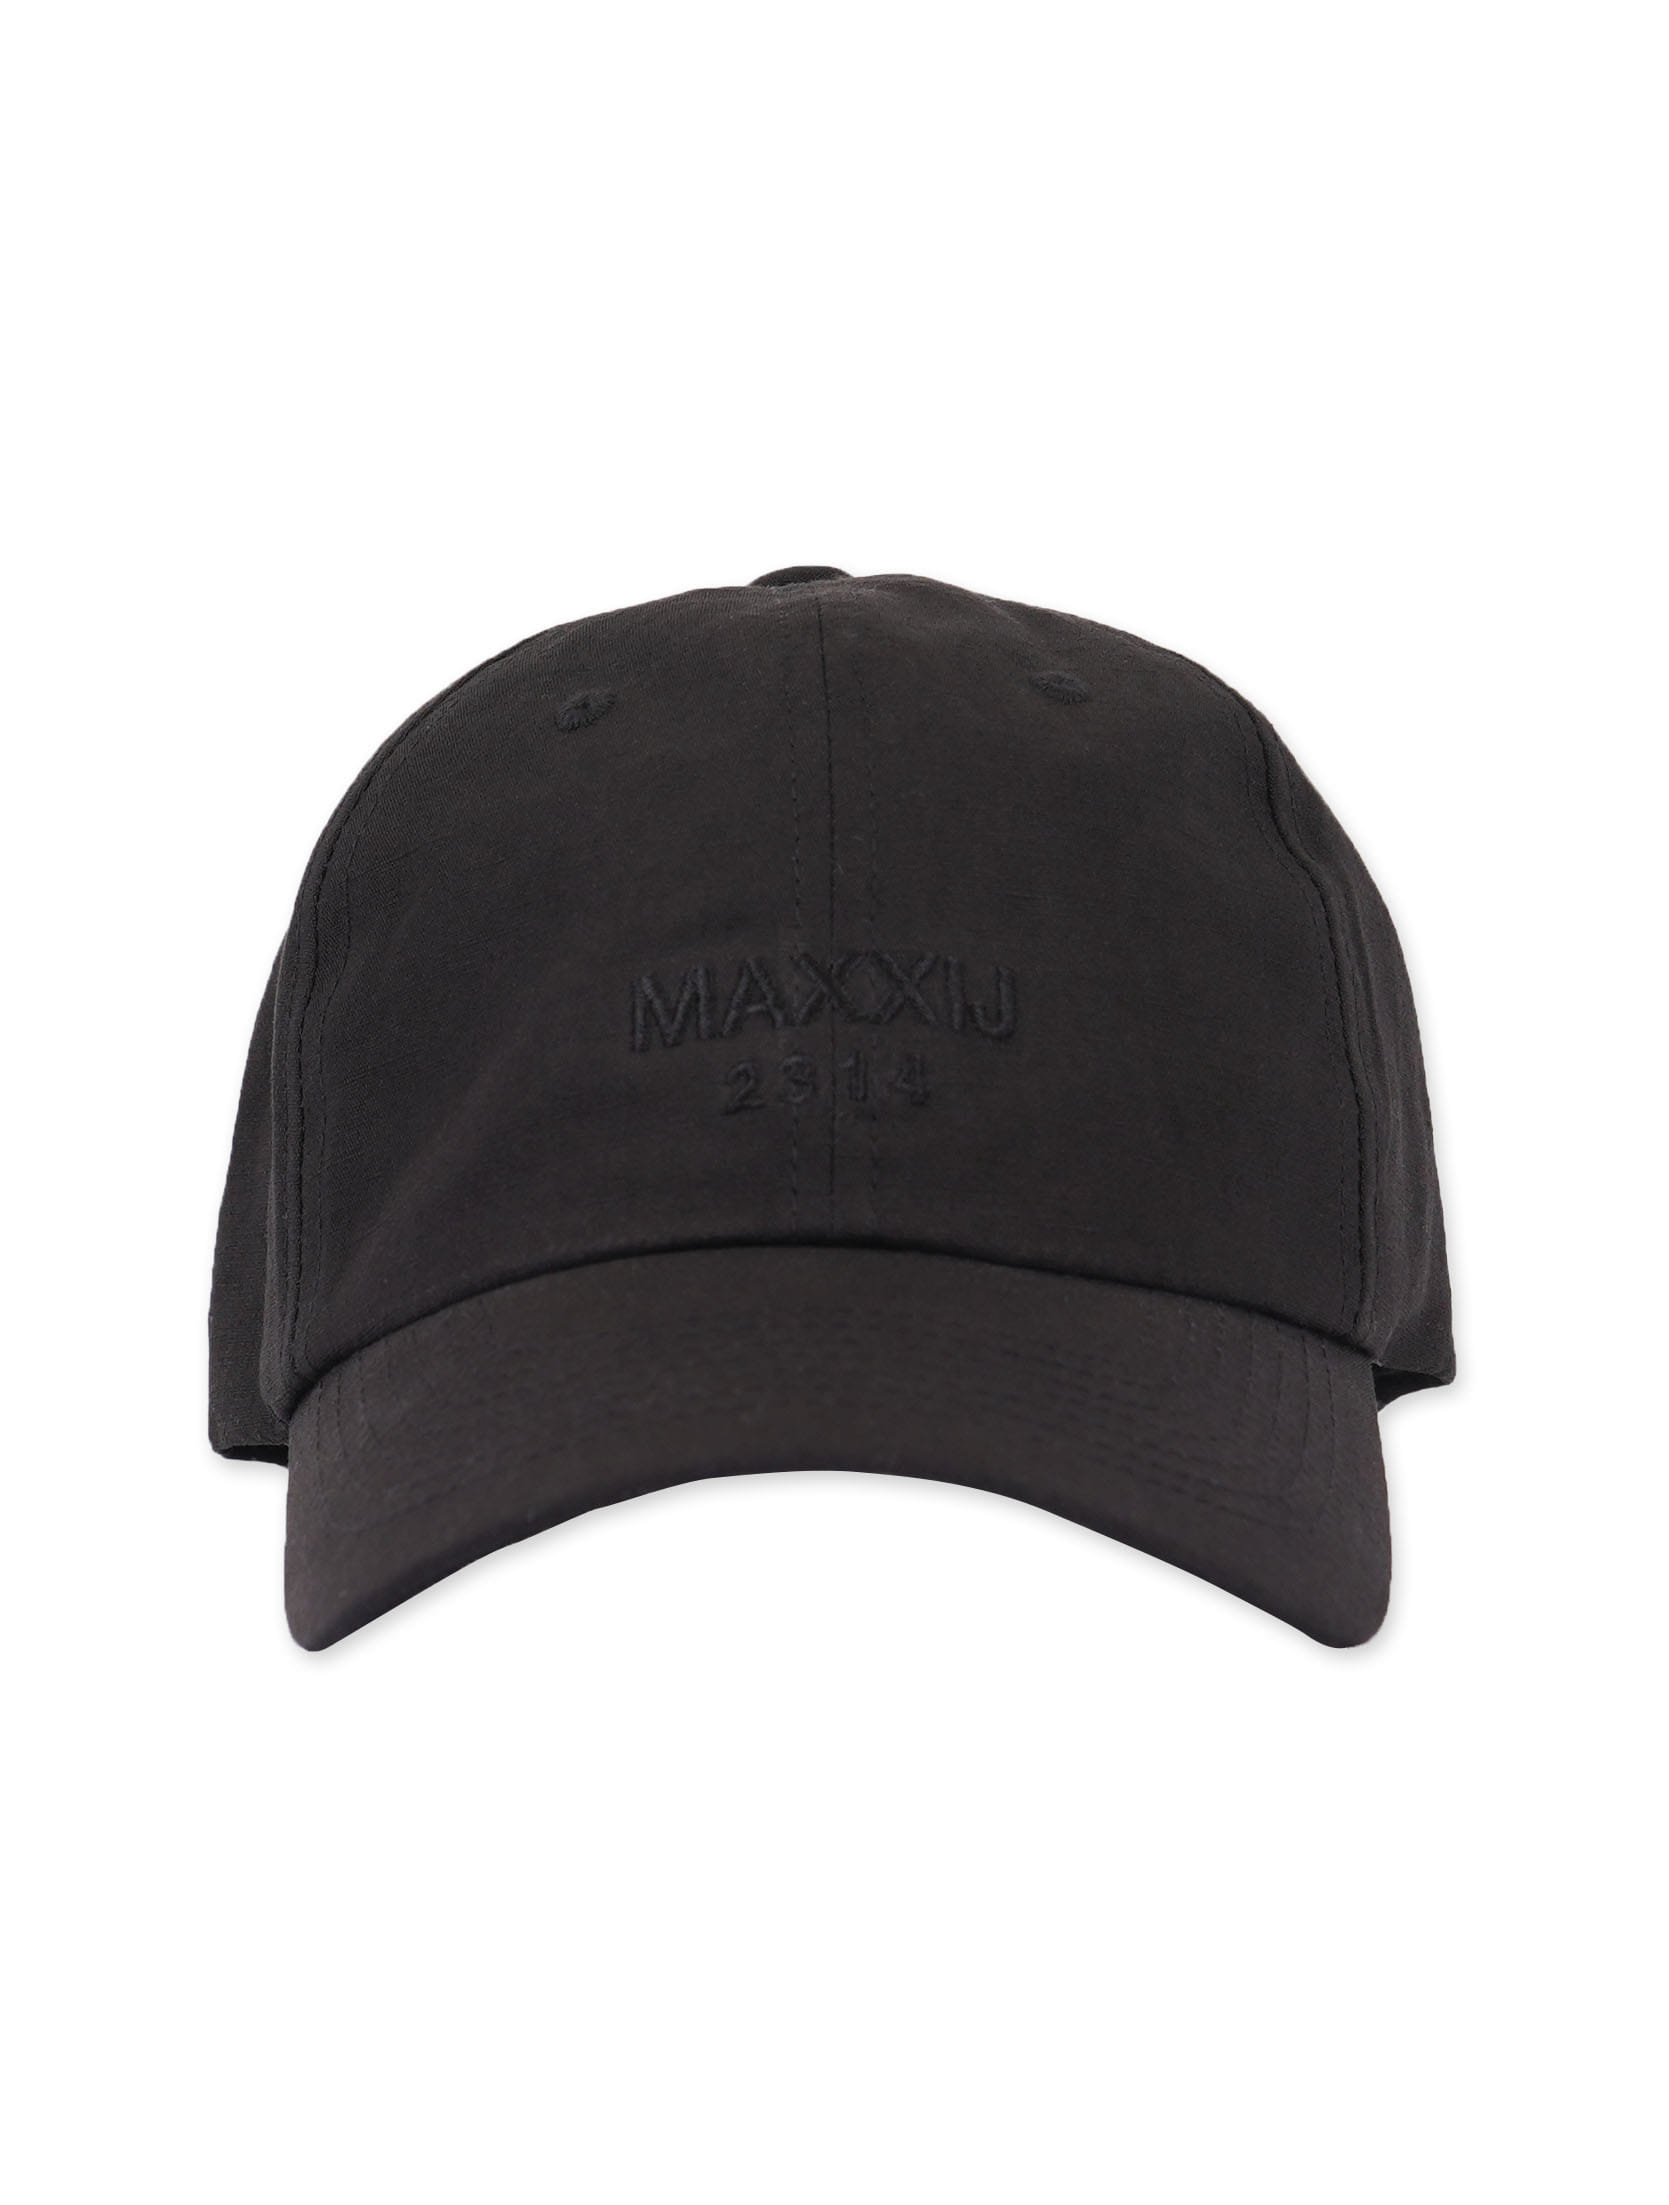 Glossy Black Logo Embroidered Ball Cap